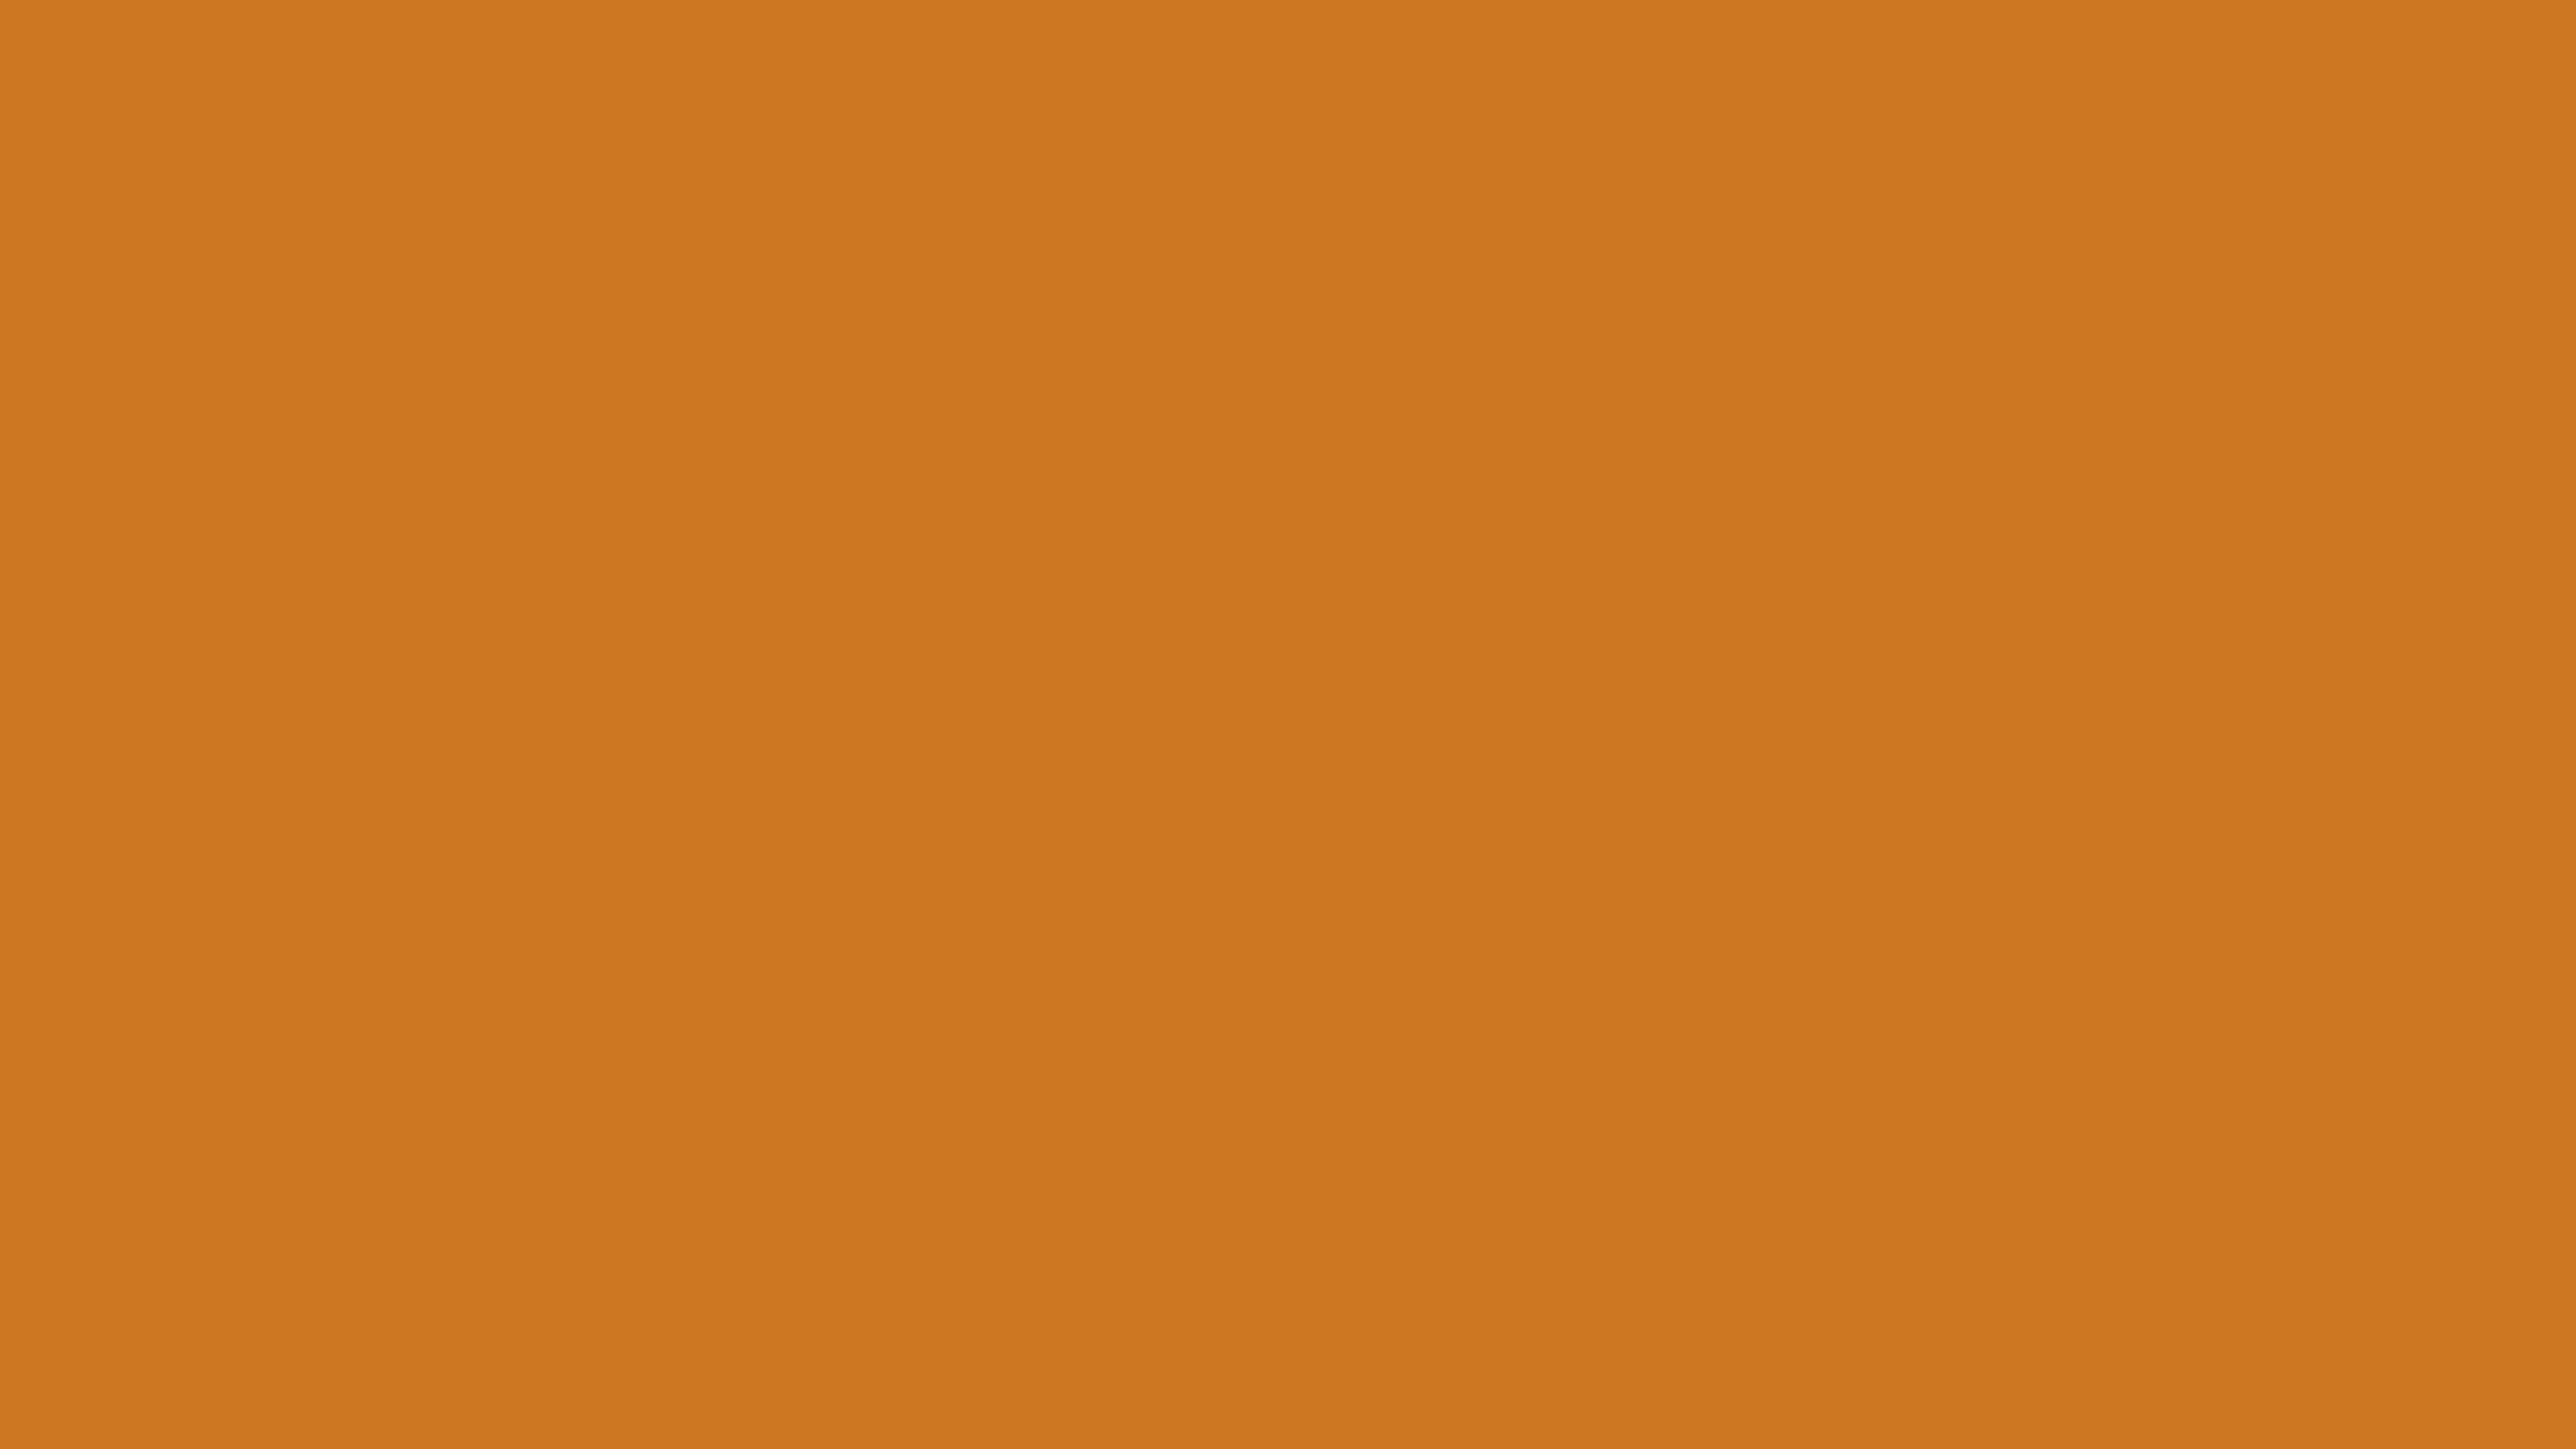 4096x2304 Ochre Solid Color Background